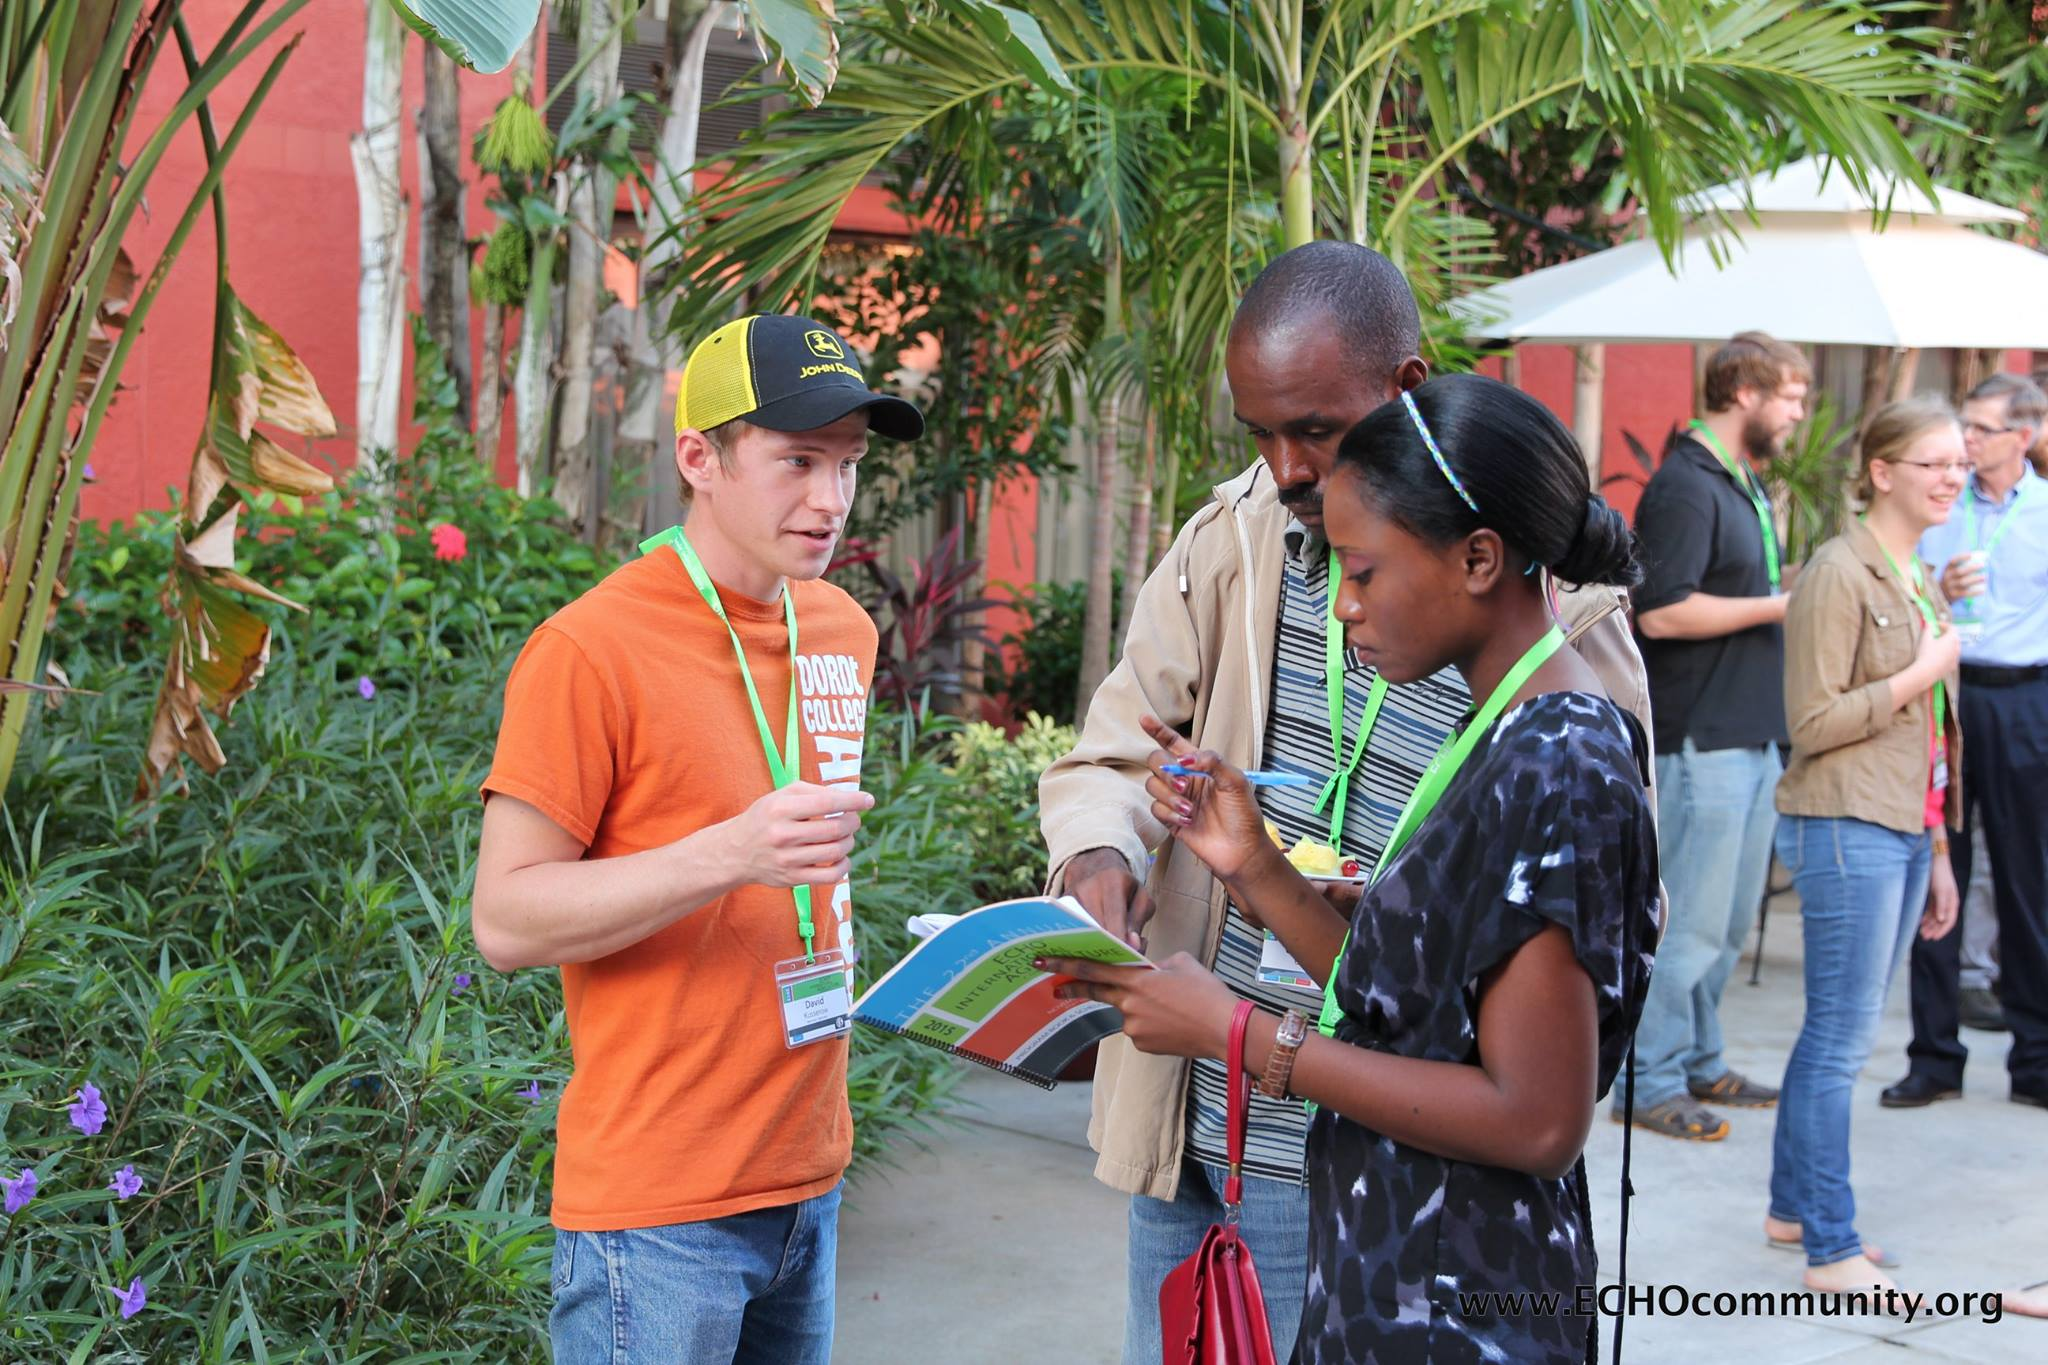 Delegates at the ECHO International Agriculture Conference in Fort Myers, Florida connect about ways to help small-scale farmers through sustainable agriculture. More information:  http://conference.echocommunity.org/  — at  ECHO Global Farm .